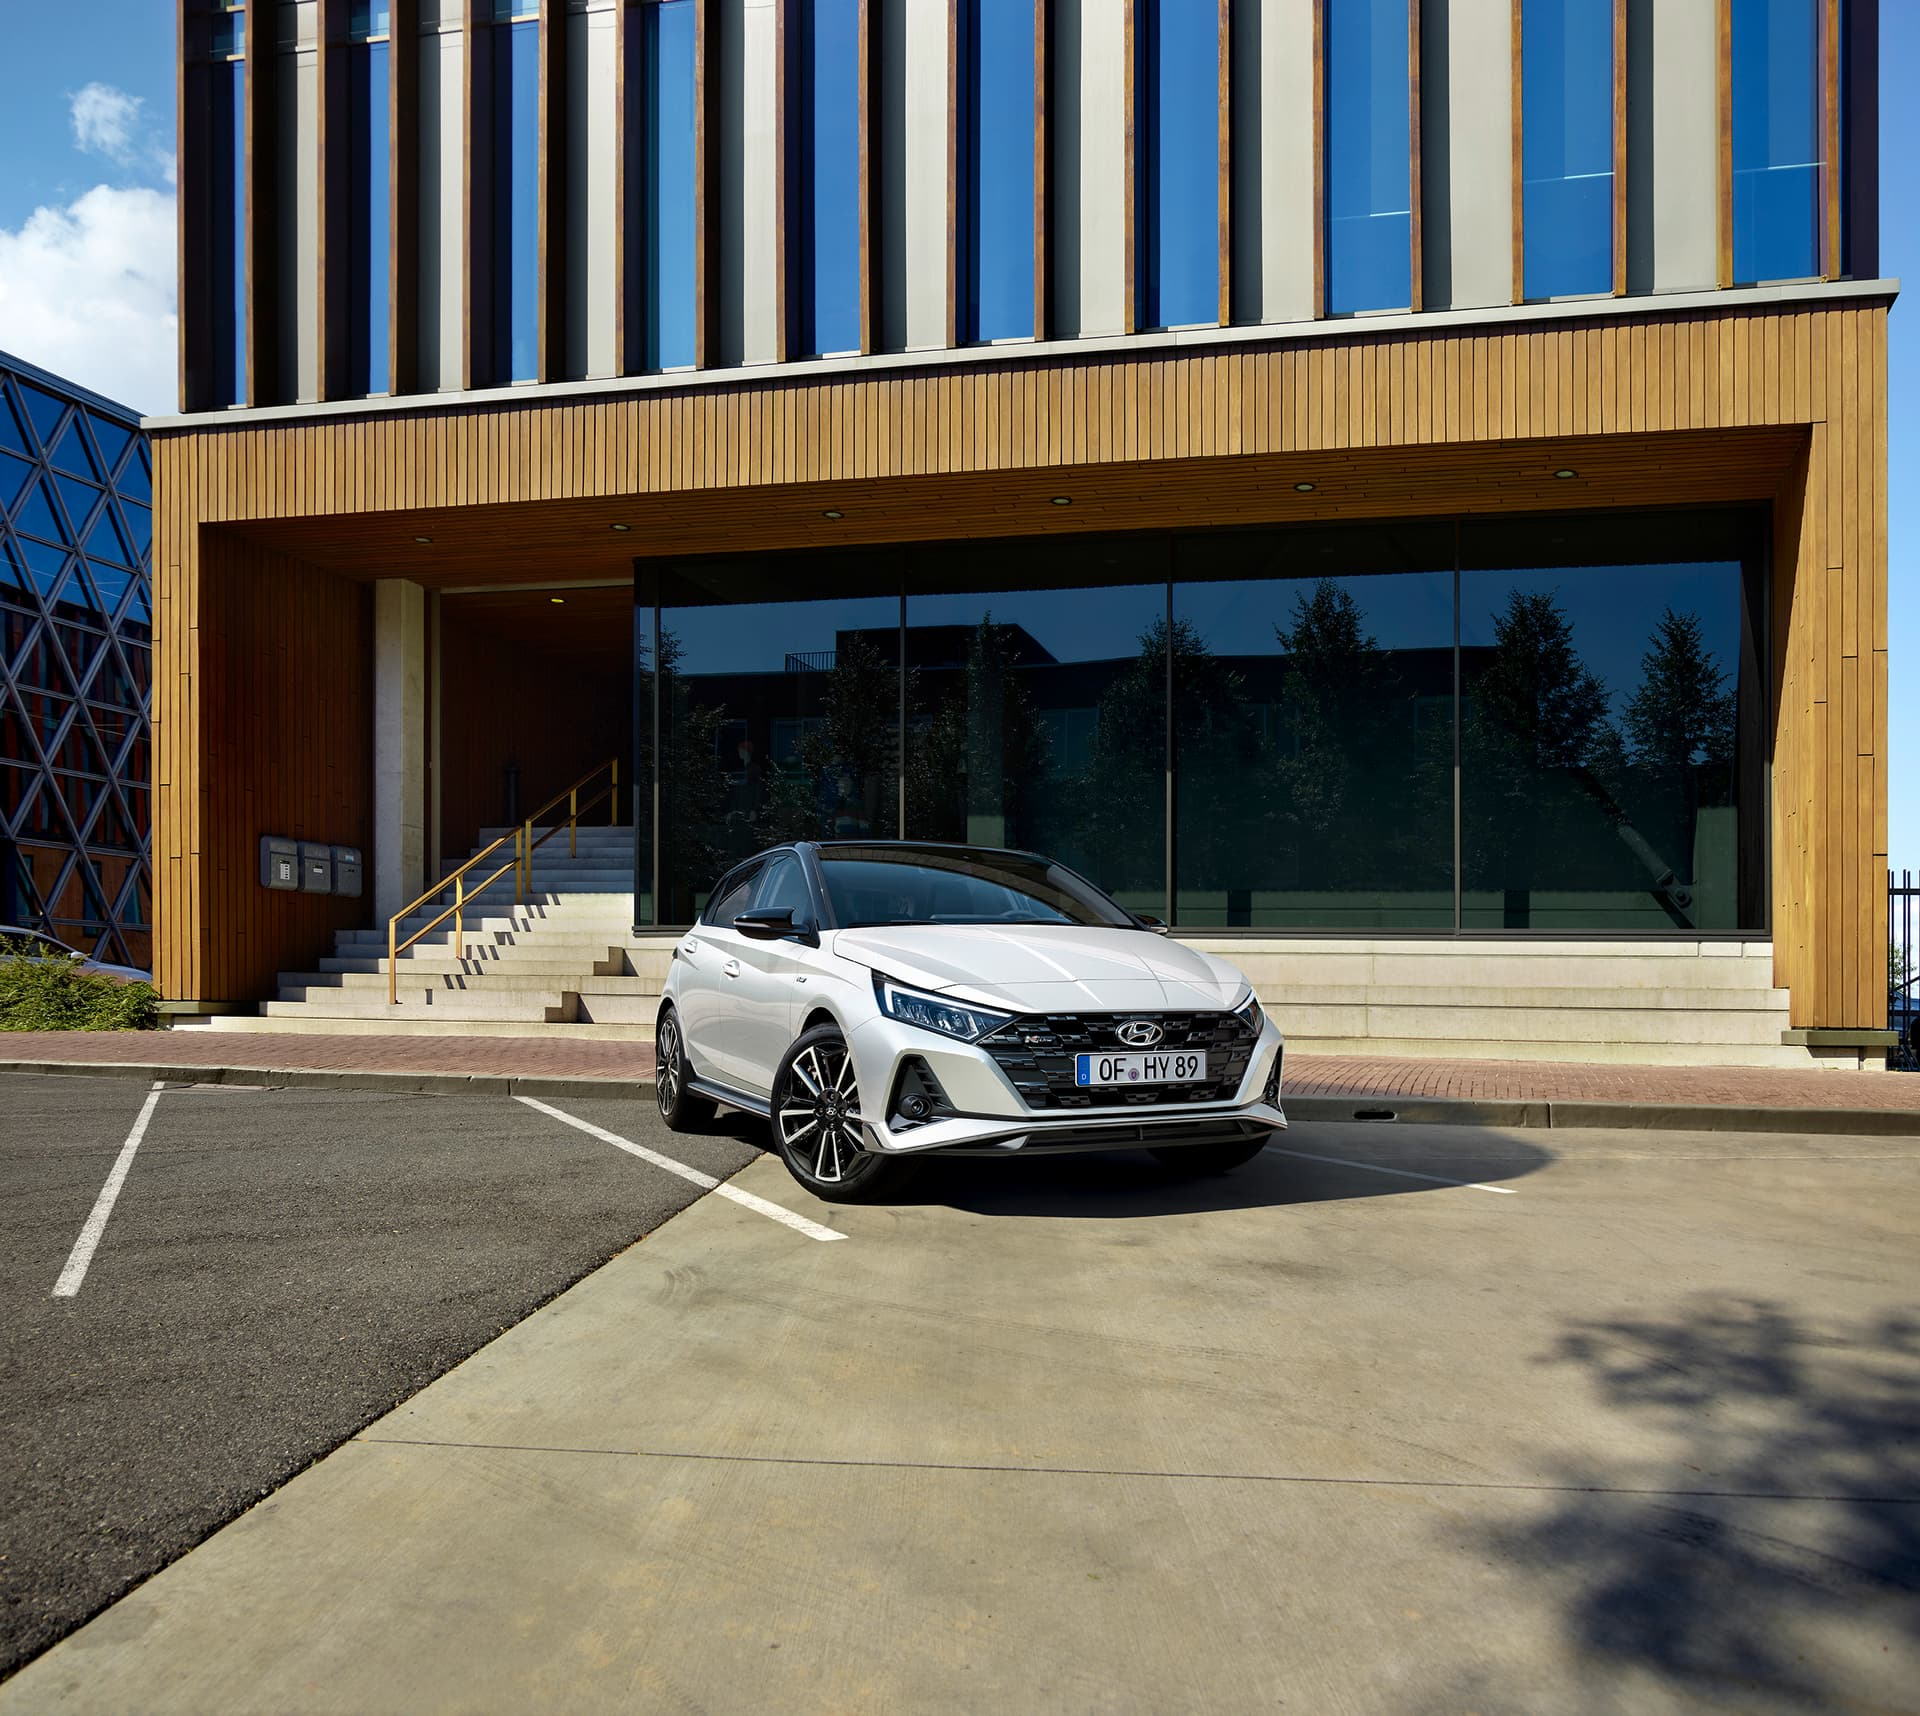 The all-new Hyundai i20 N Line in front of a building with large windows